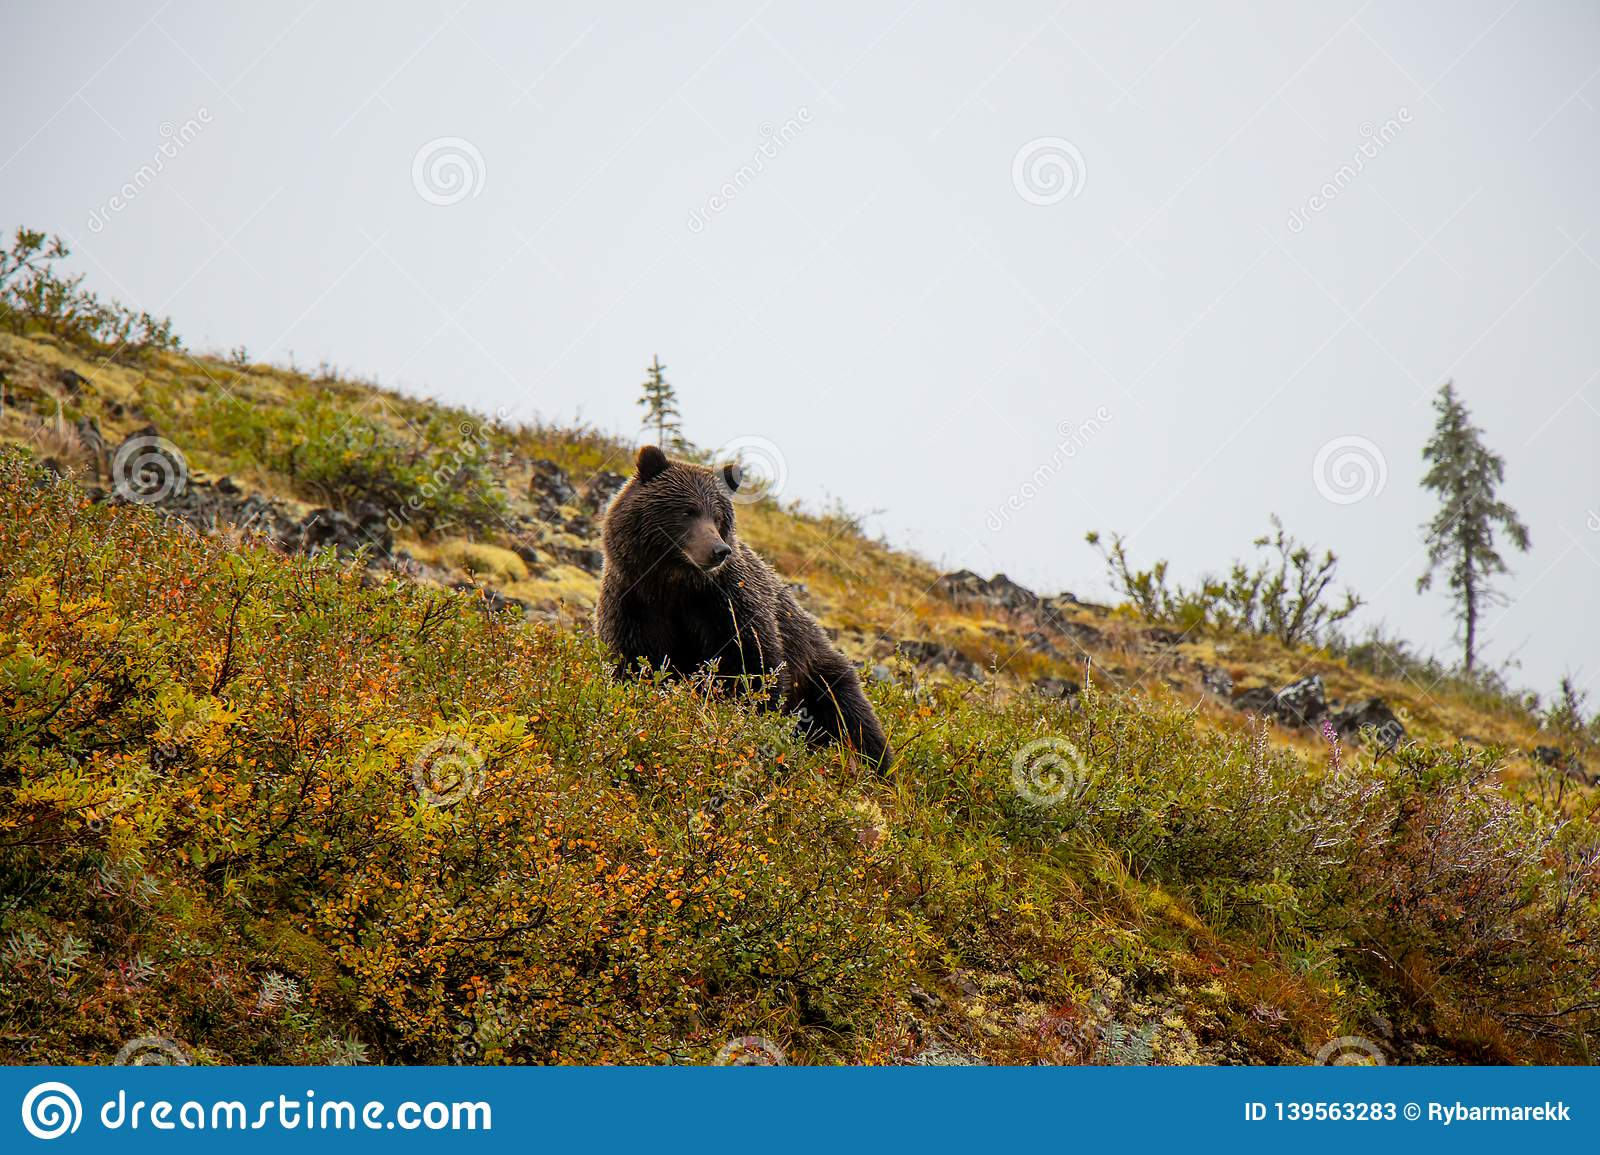 Grizzly bear at the Top of the world Highway, Dawson City - Alaska border, Yukon, Canada